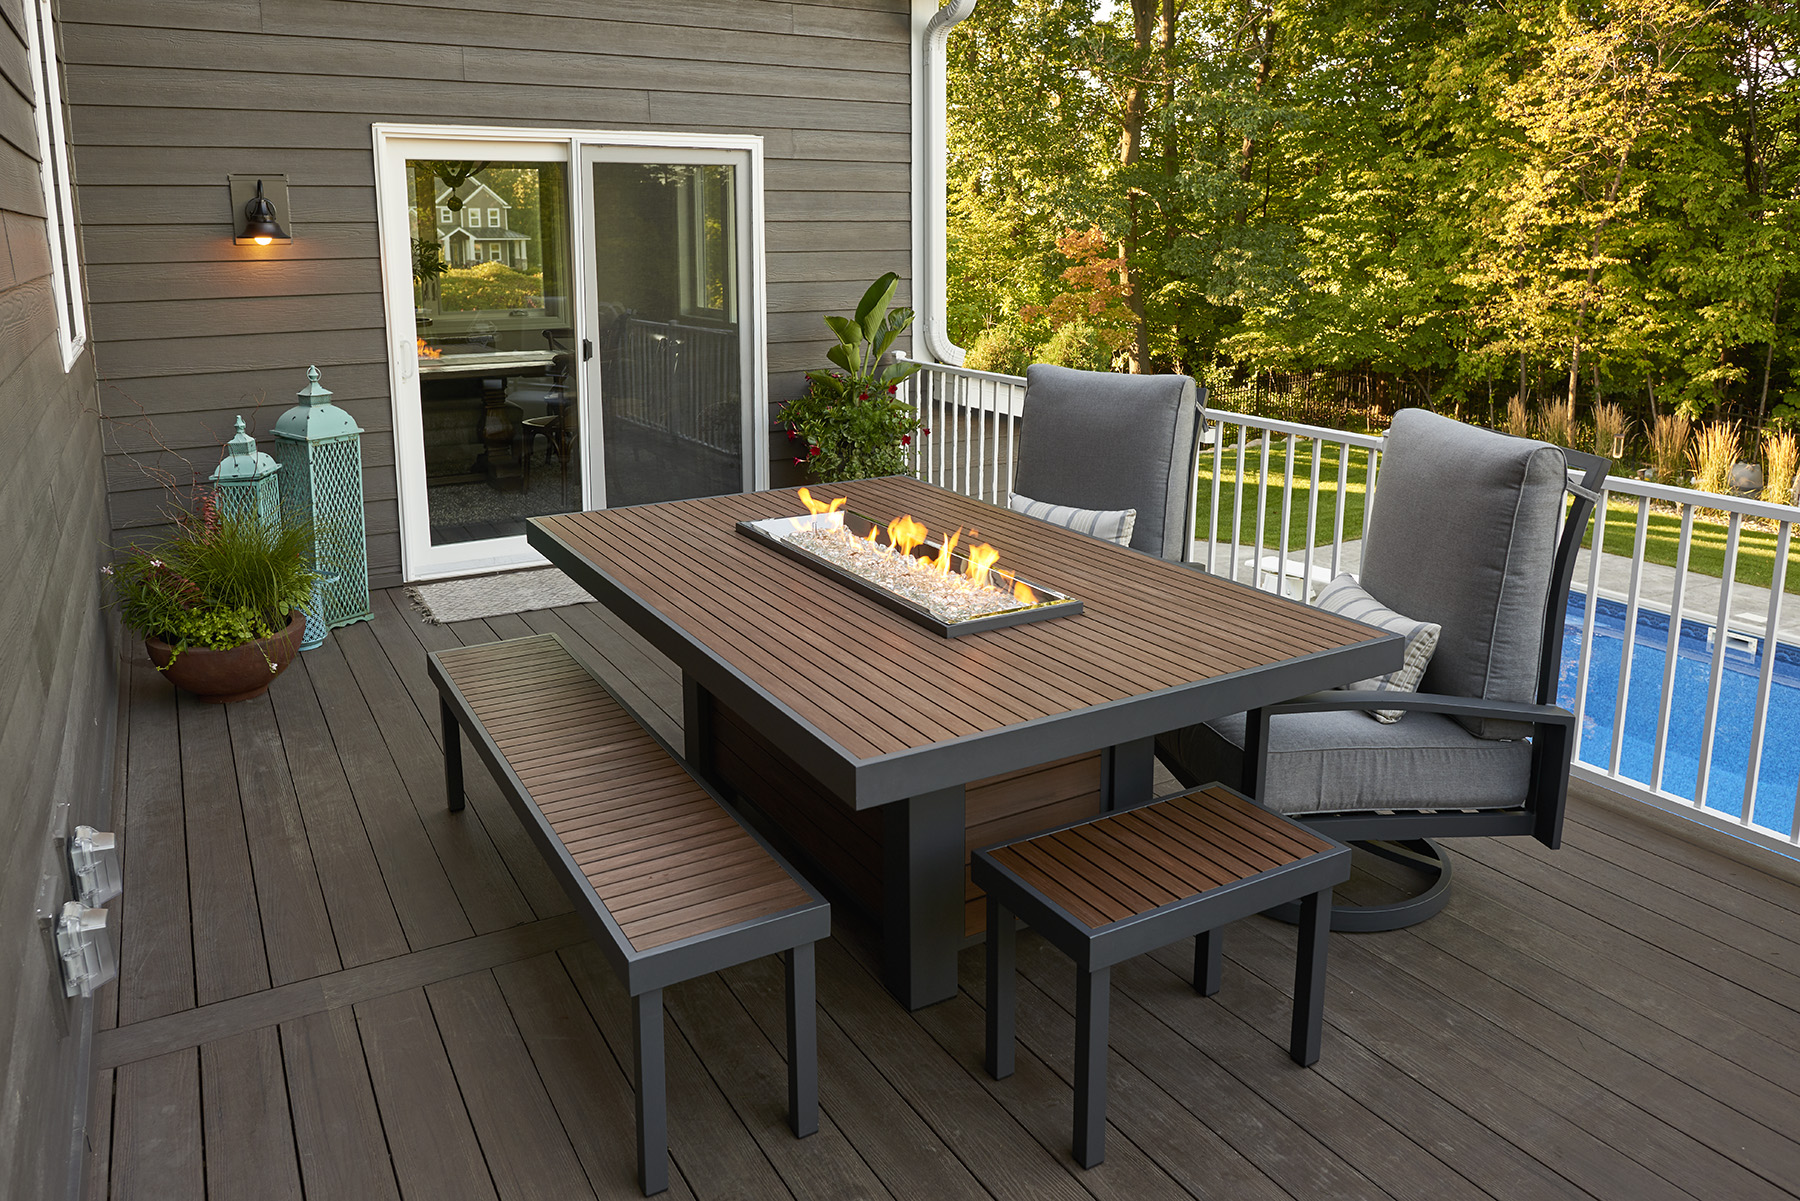 Outdoor GreatRoom Company Unveils New 2018 Products